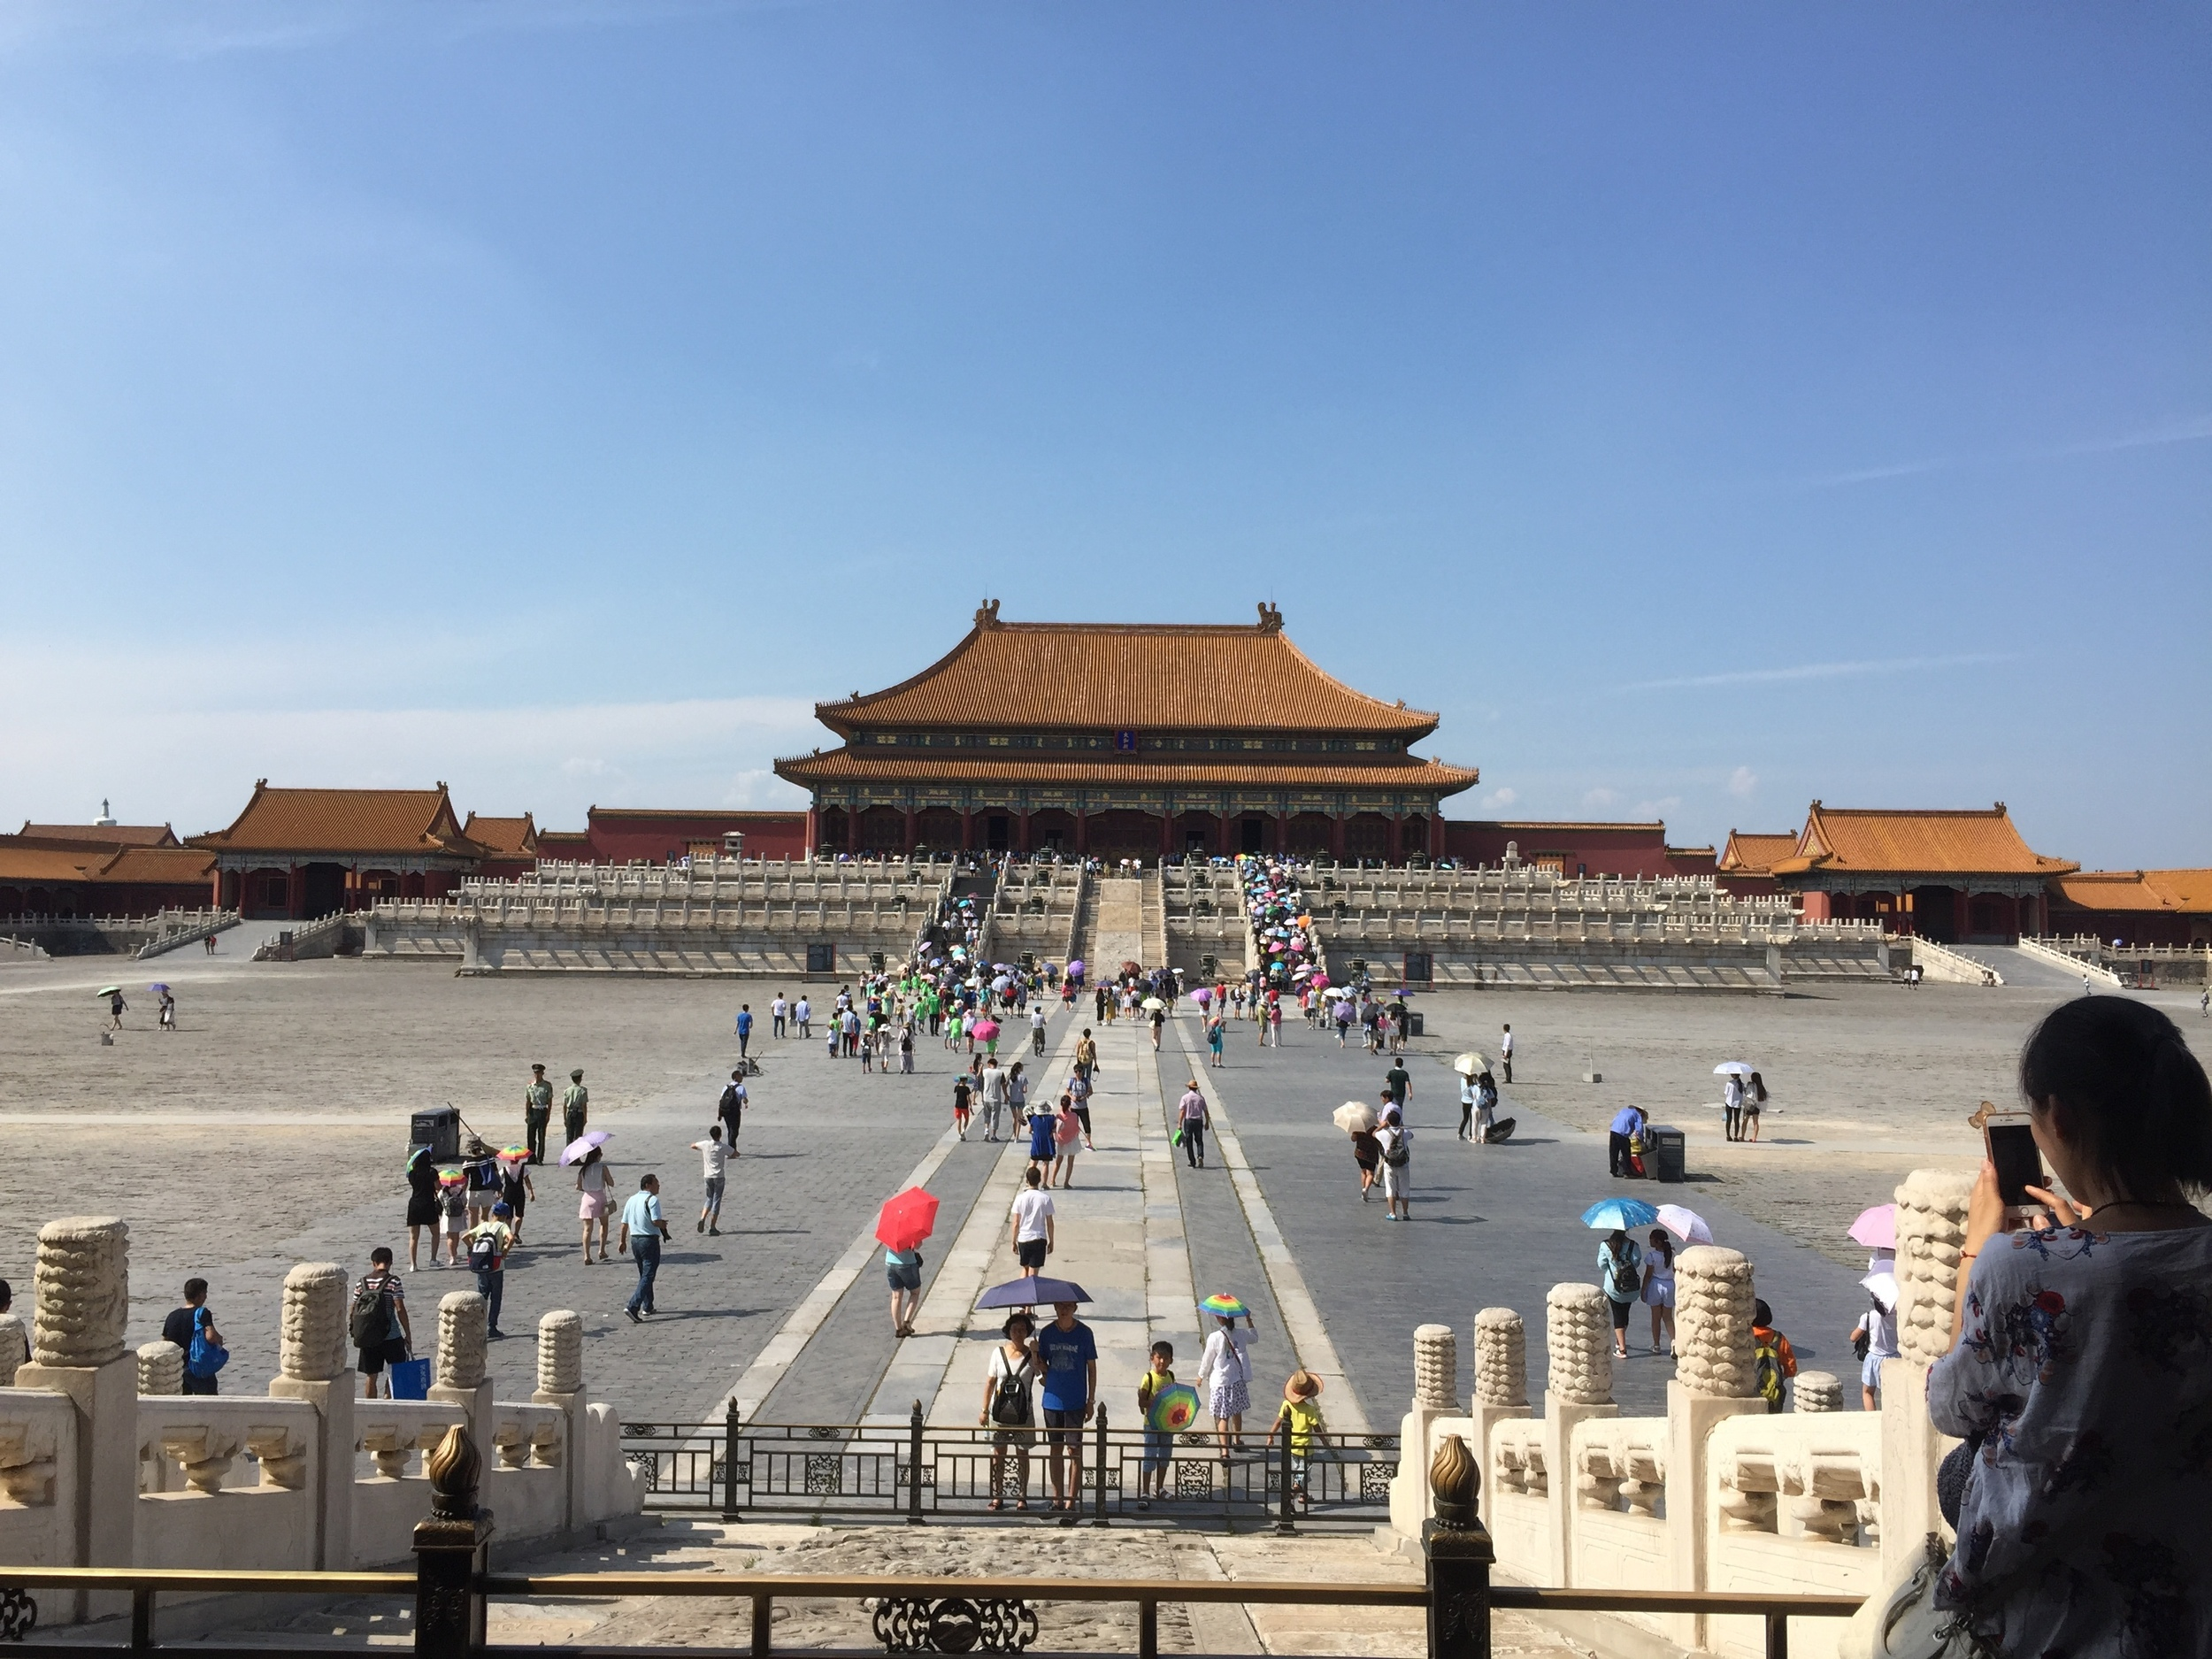 One of the many majestic views on offer to tourists in Beijing's Forbidden City